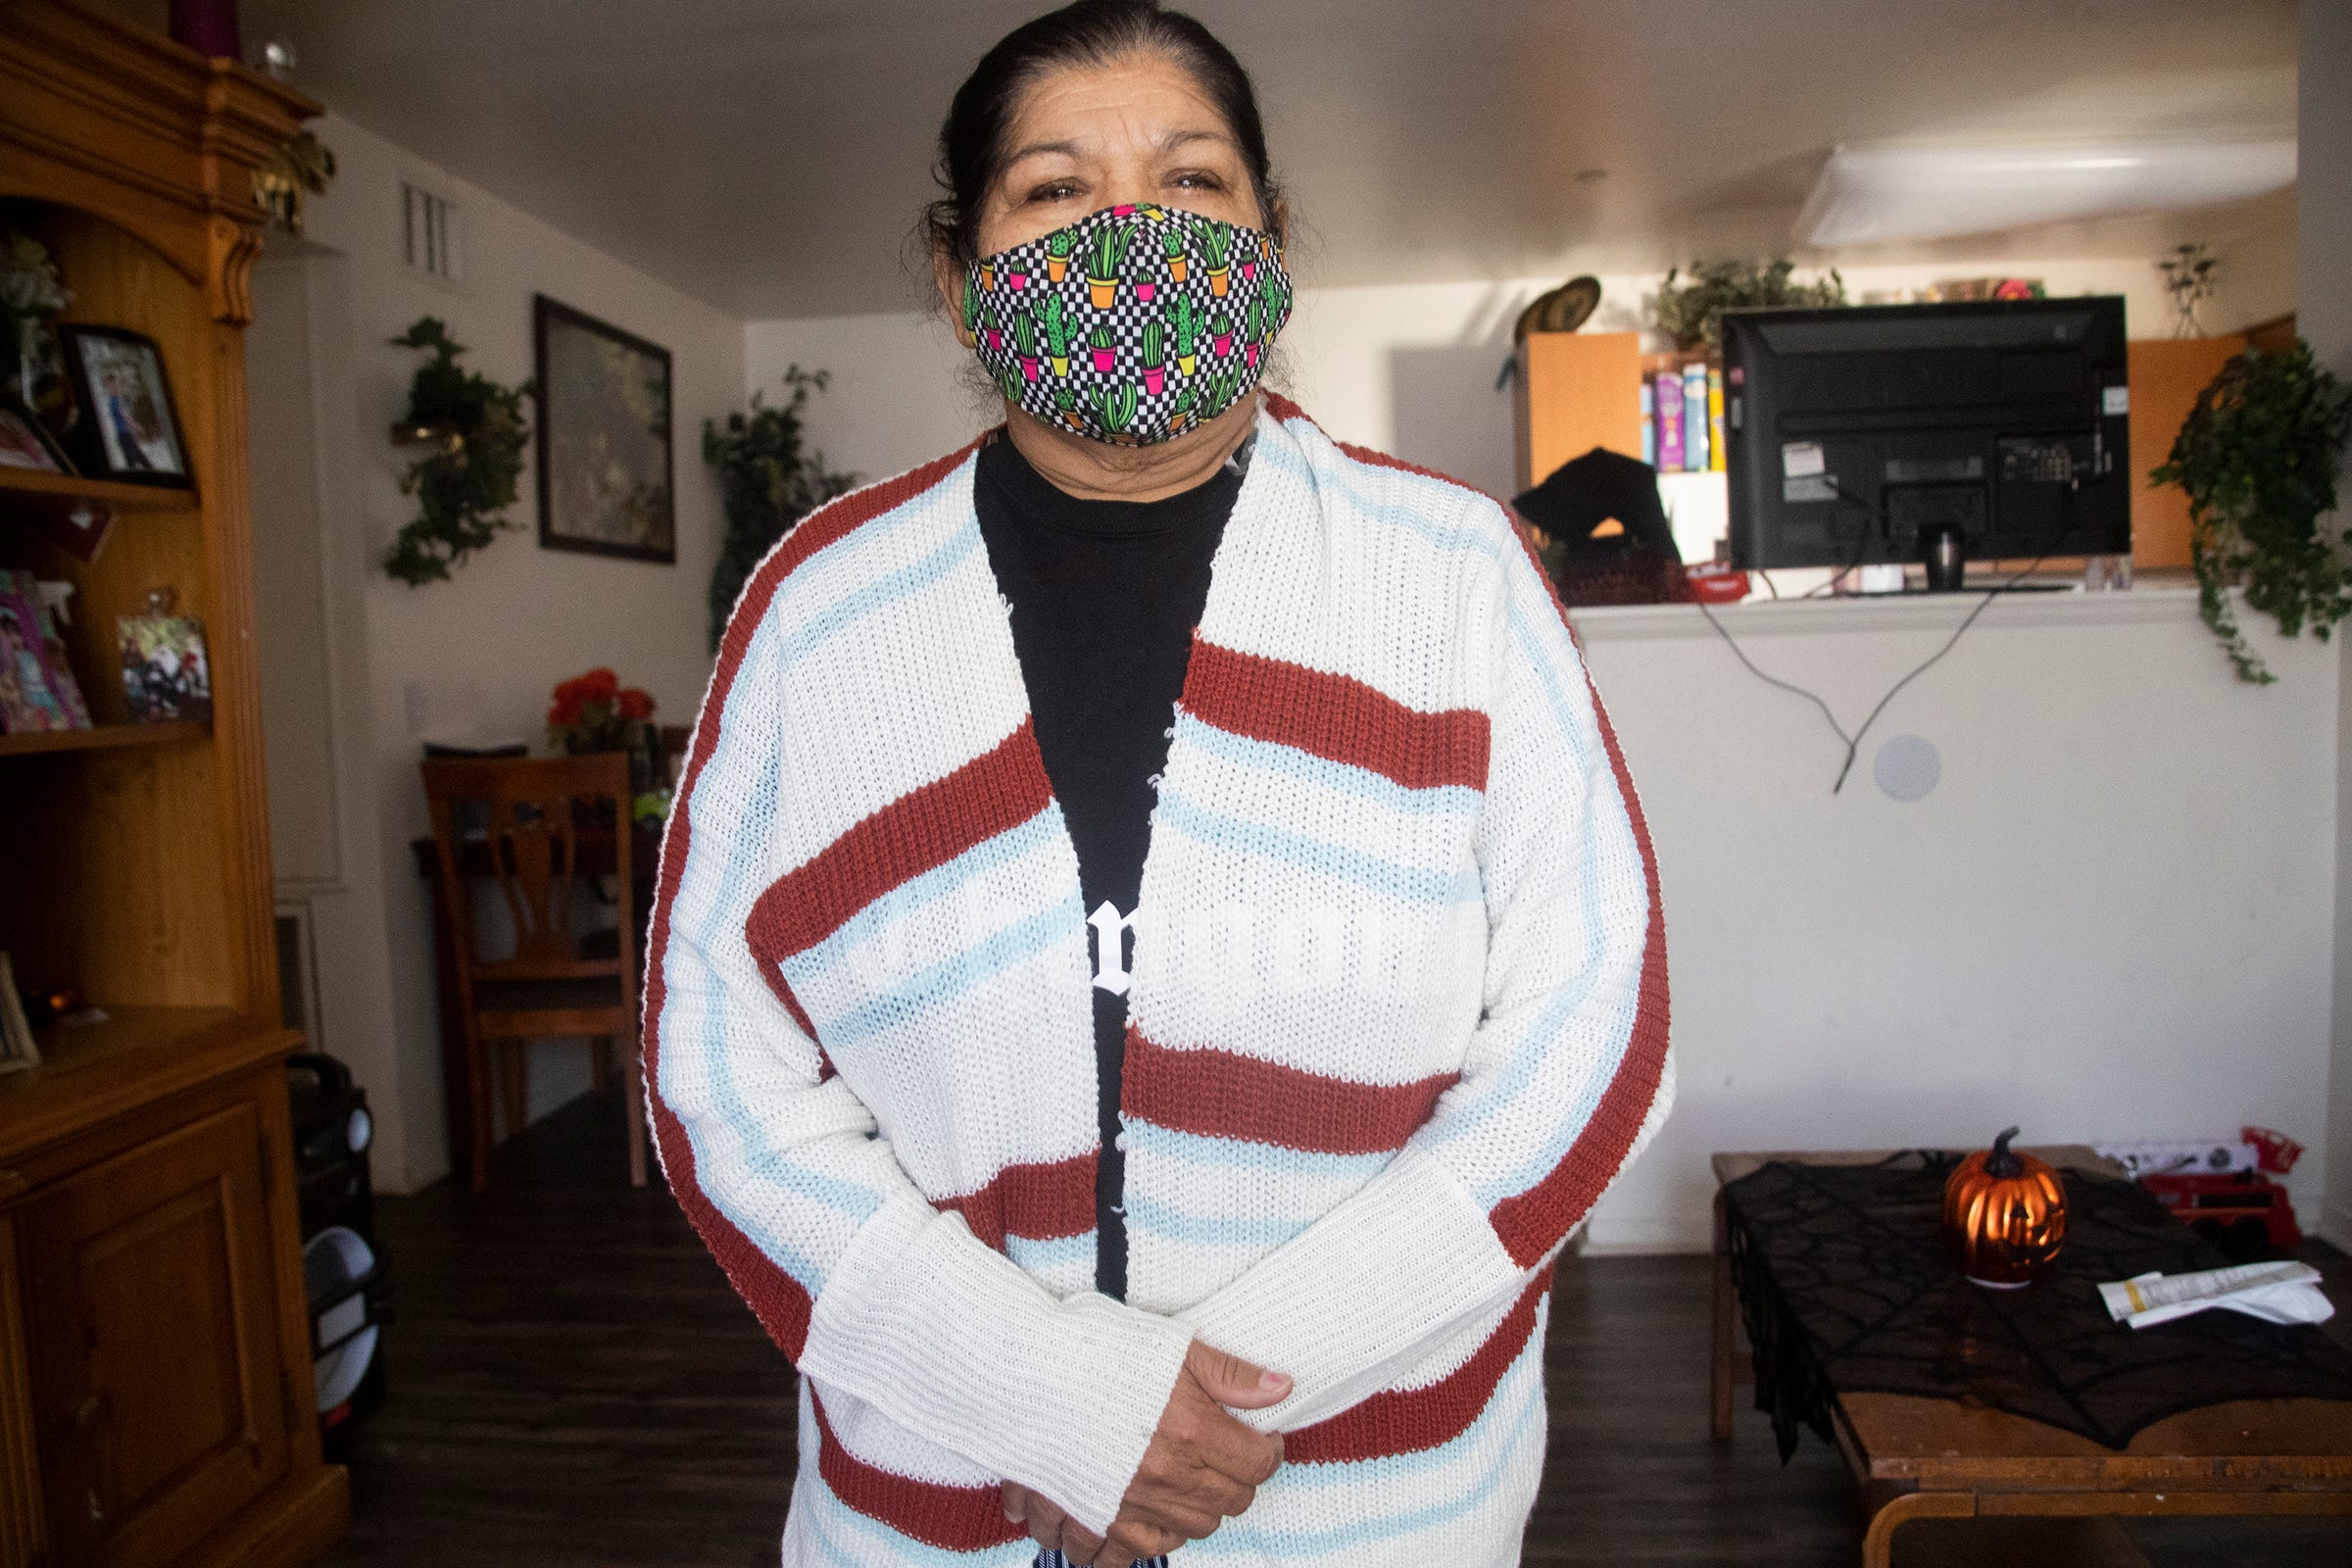 Maria Guadalupe Ortega Valladarez worked in the fields of Imperial County, Calif., for 40 years. She was infected with COVID-19 and was hospitalized due to medical complications.